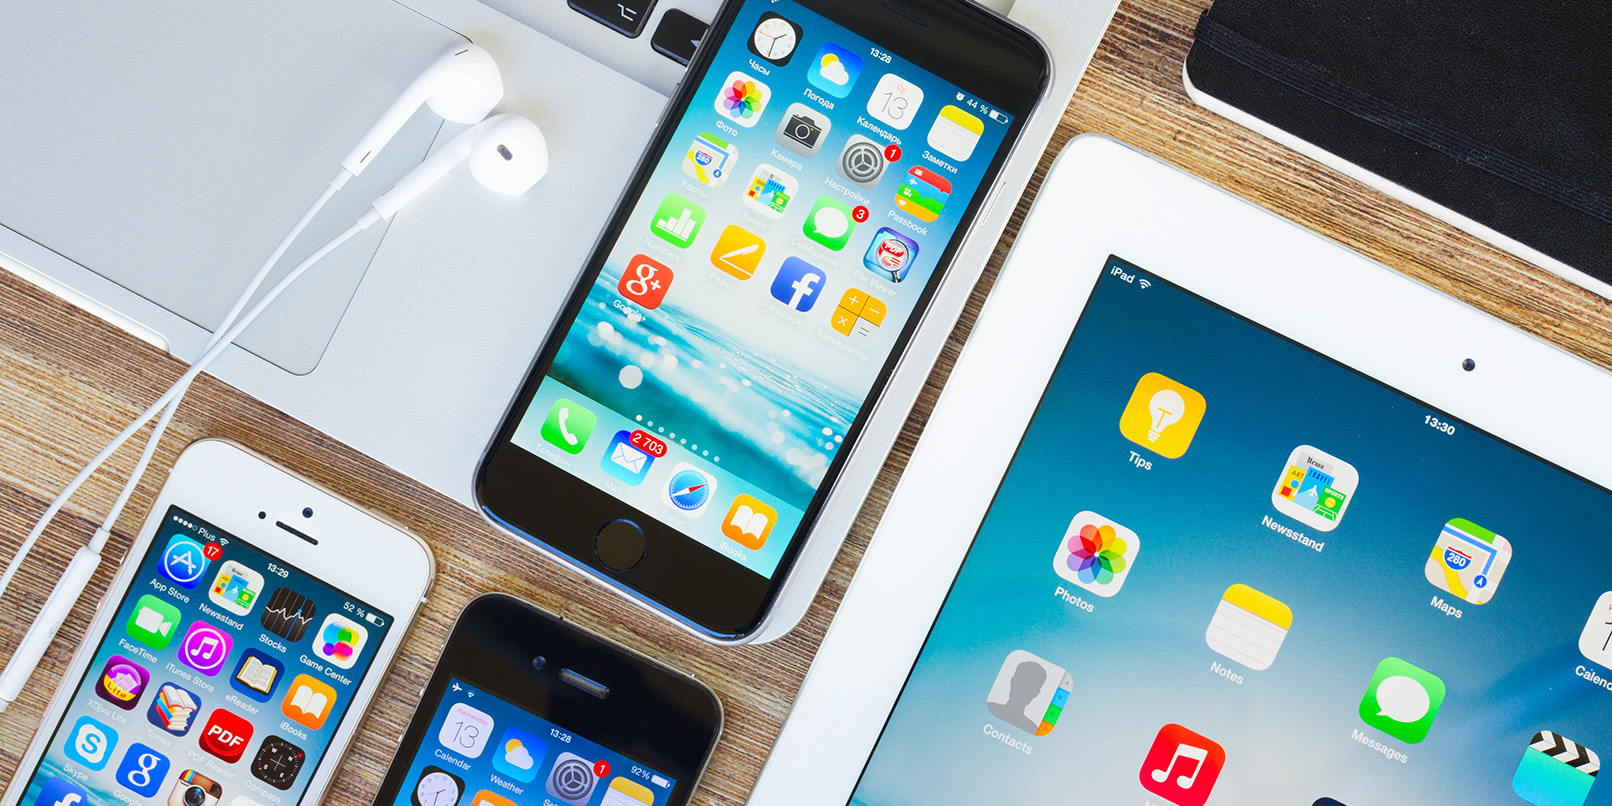 Google has open-sourced its iOS app testing tool